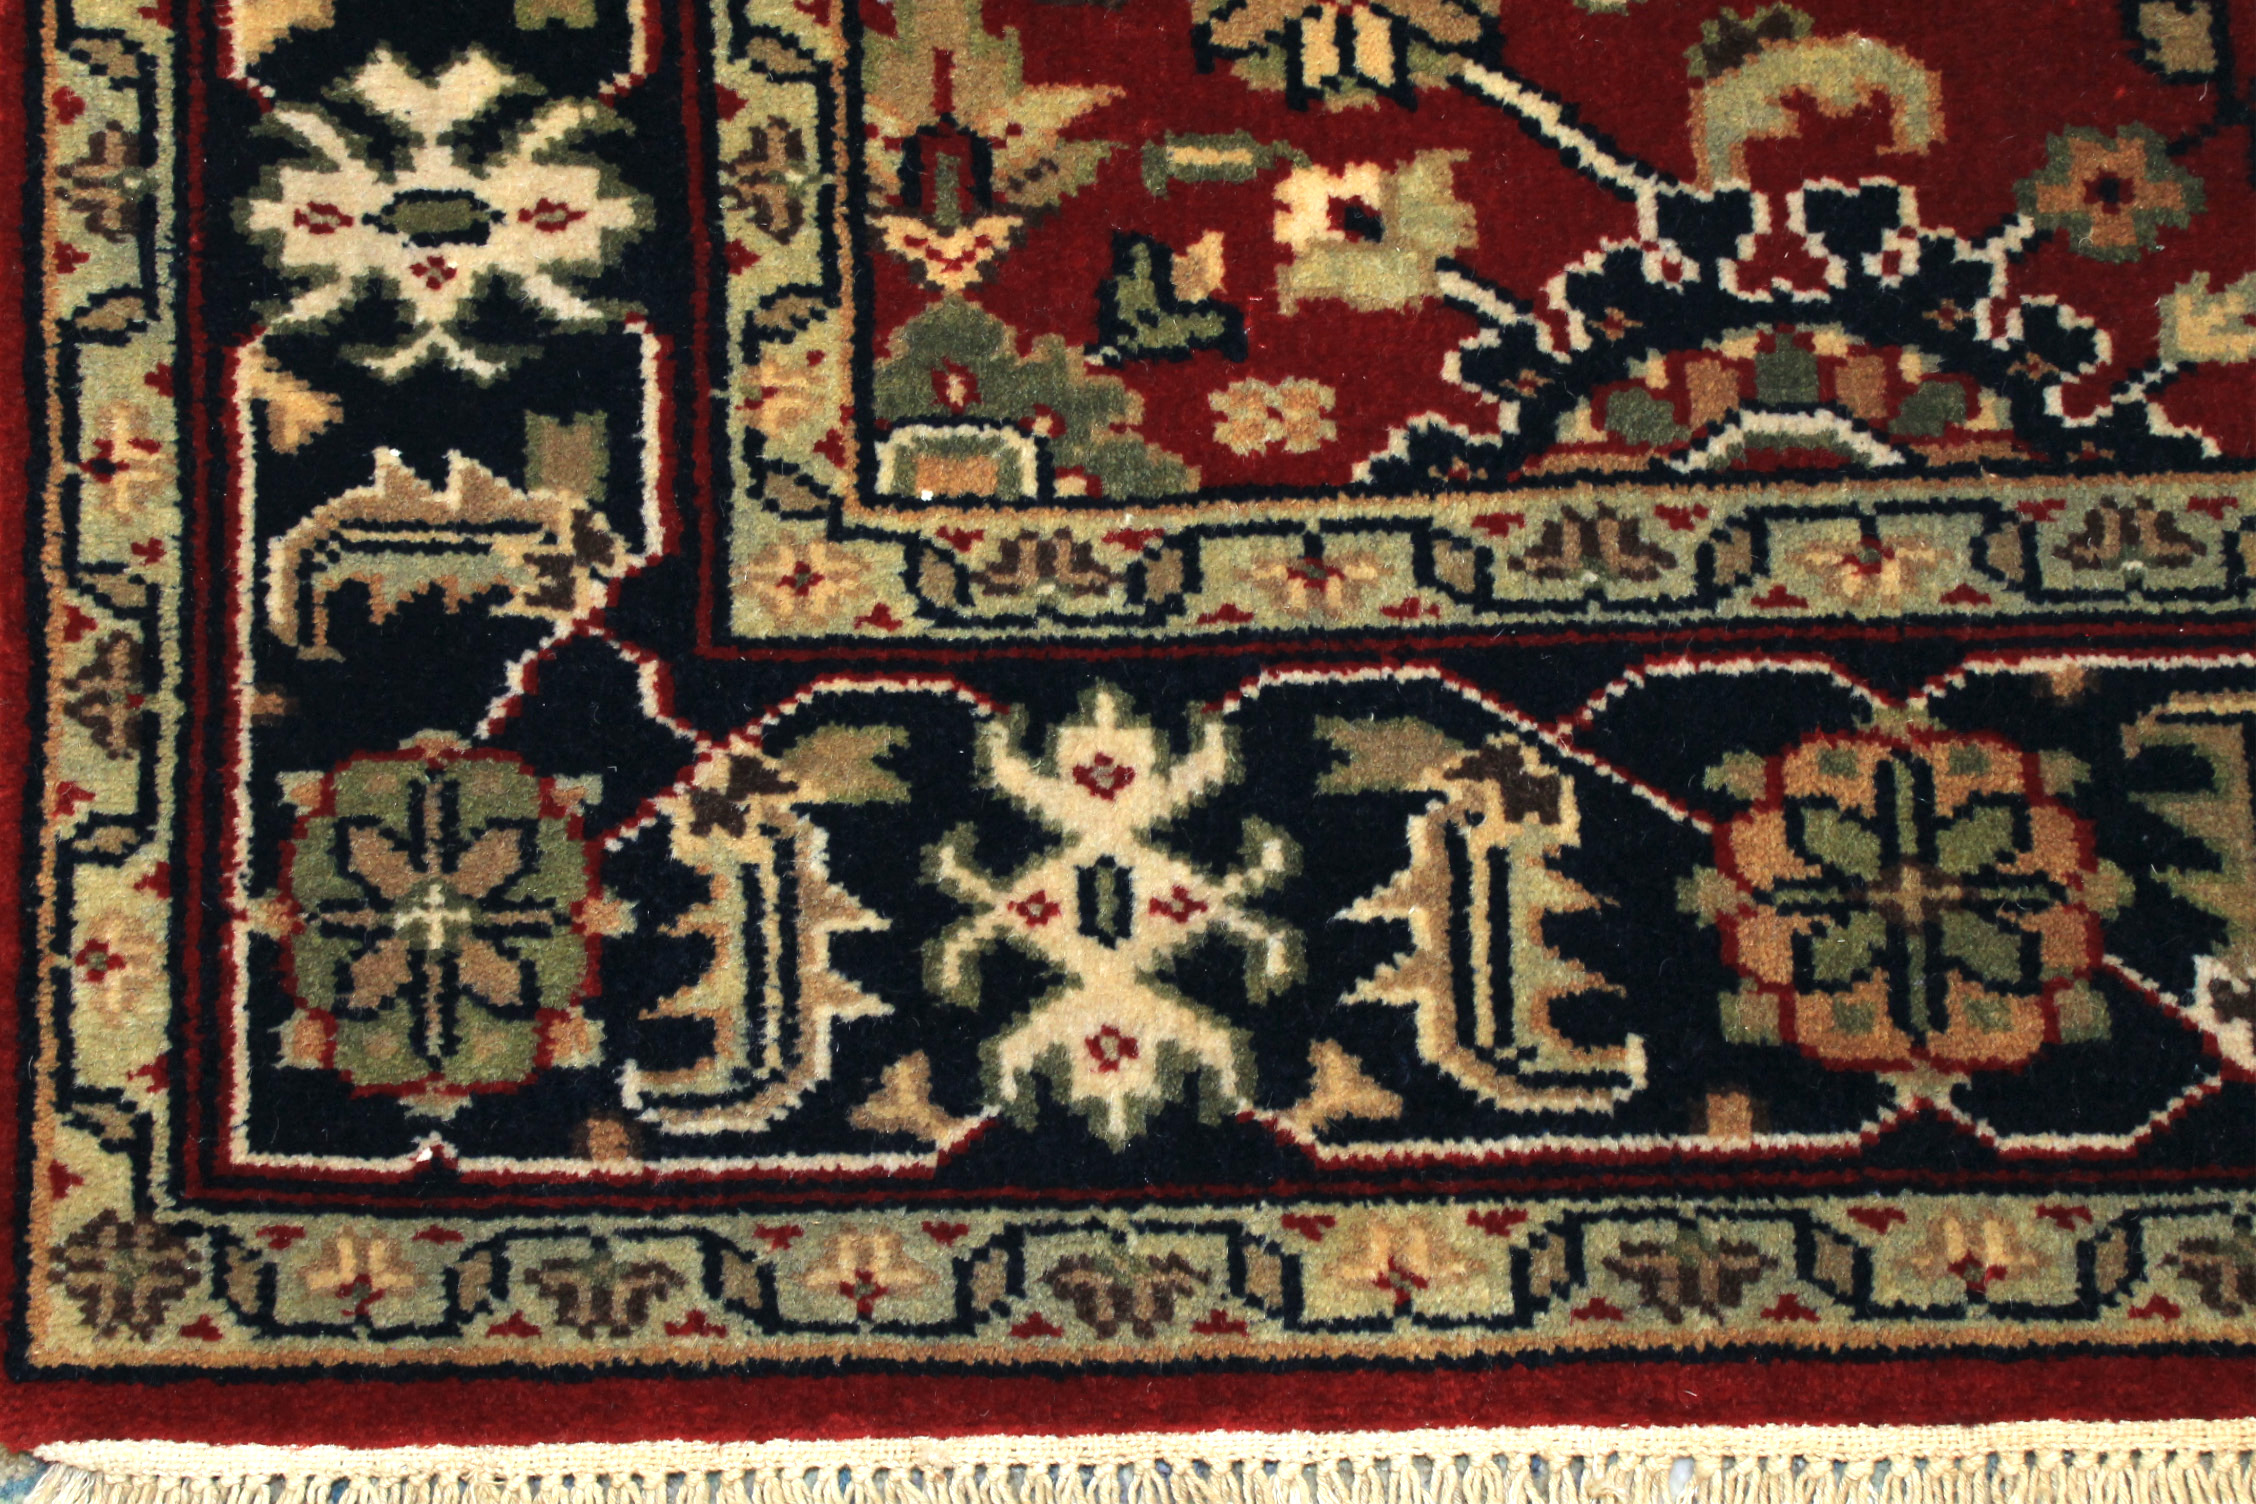 4x6 Traditional Hand Knotted Wool Area Rug - MR18549